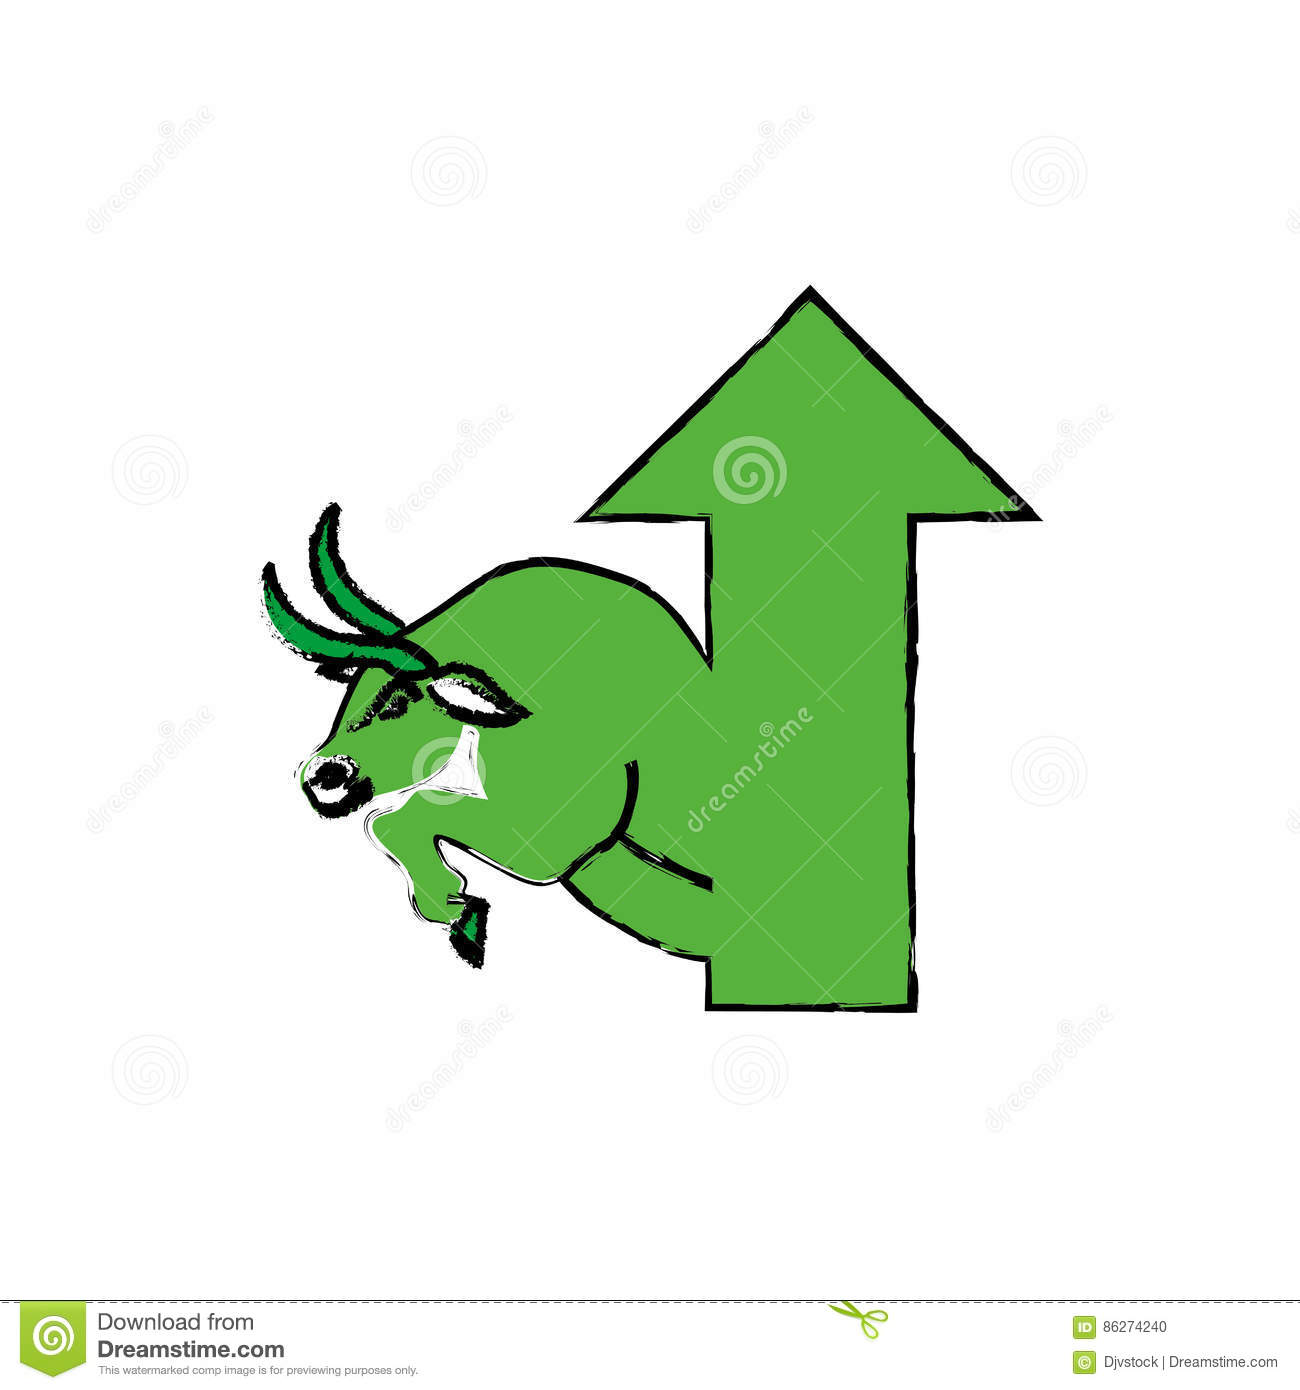 Bull Stock Market Symbol Stock Illustration Illustration Of Bank